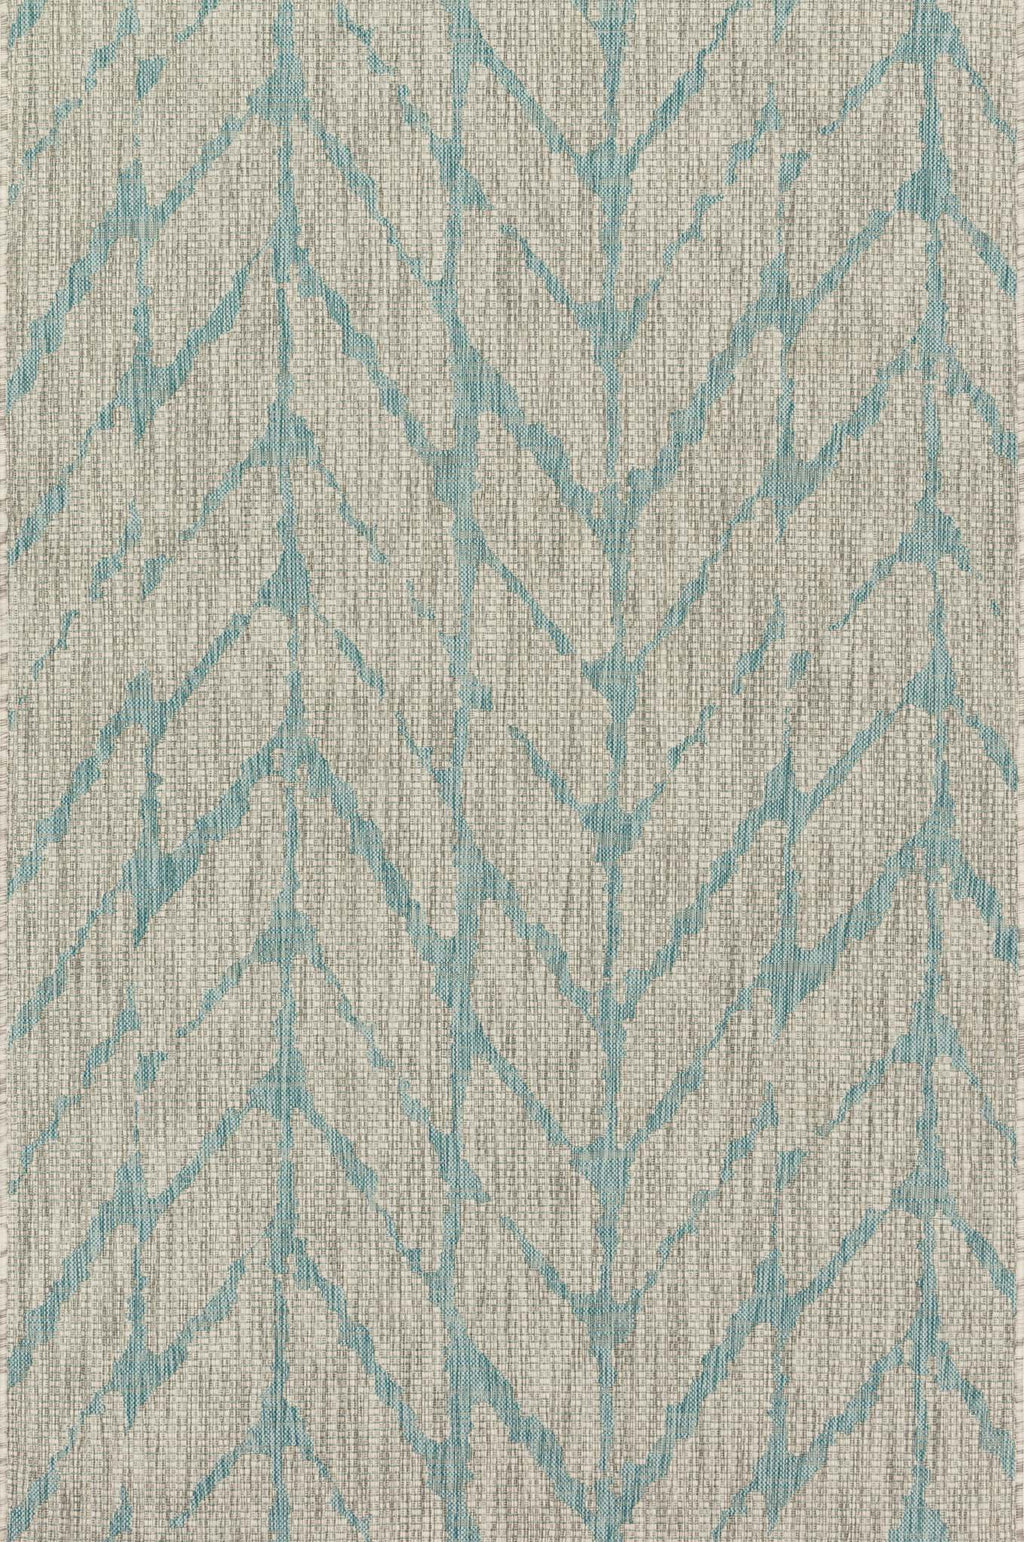 ISLE Collection Rug  in  MIST / AQUA Beige Small Power-Loomed Polypropylene